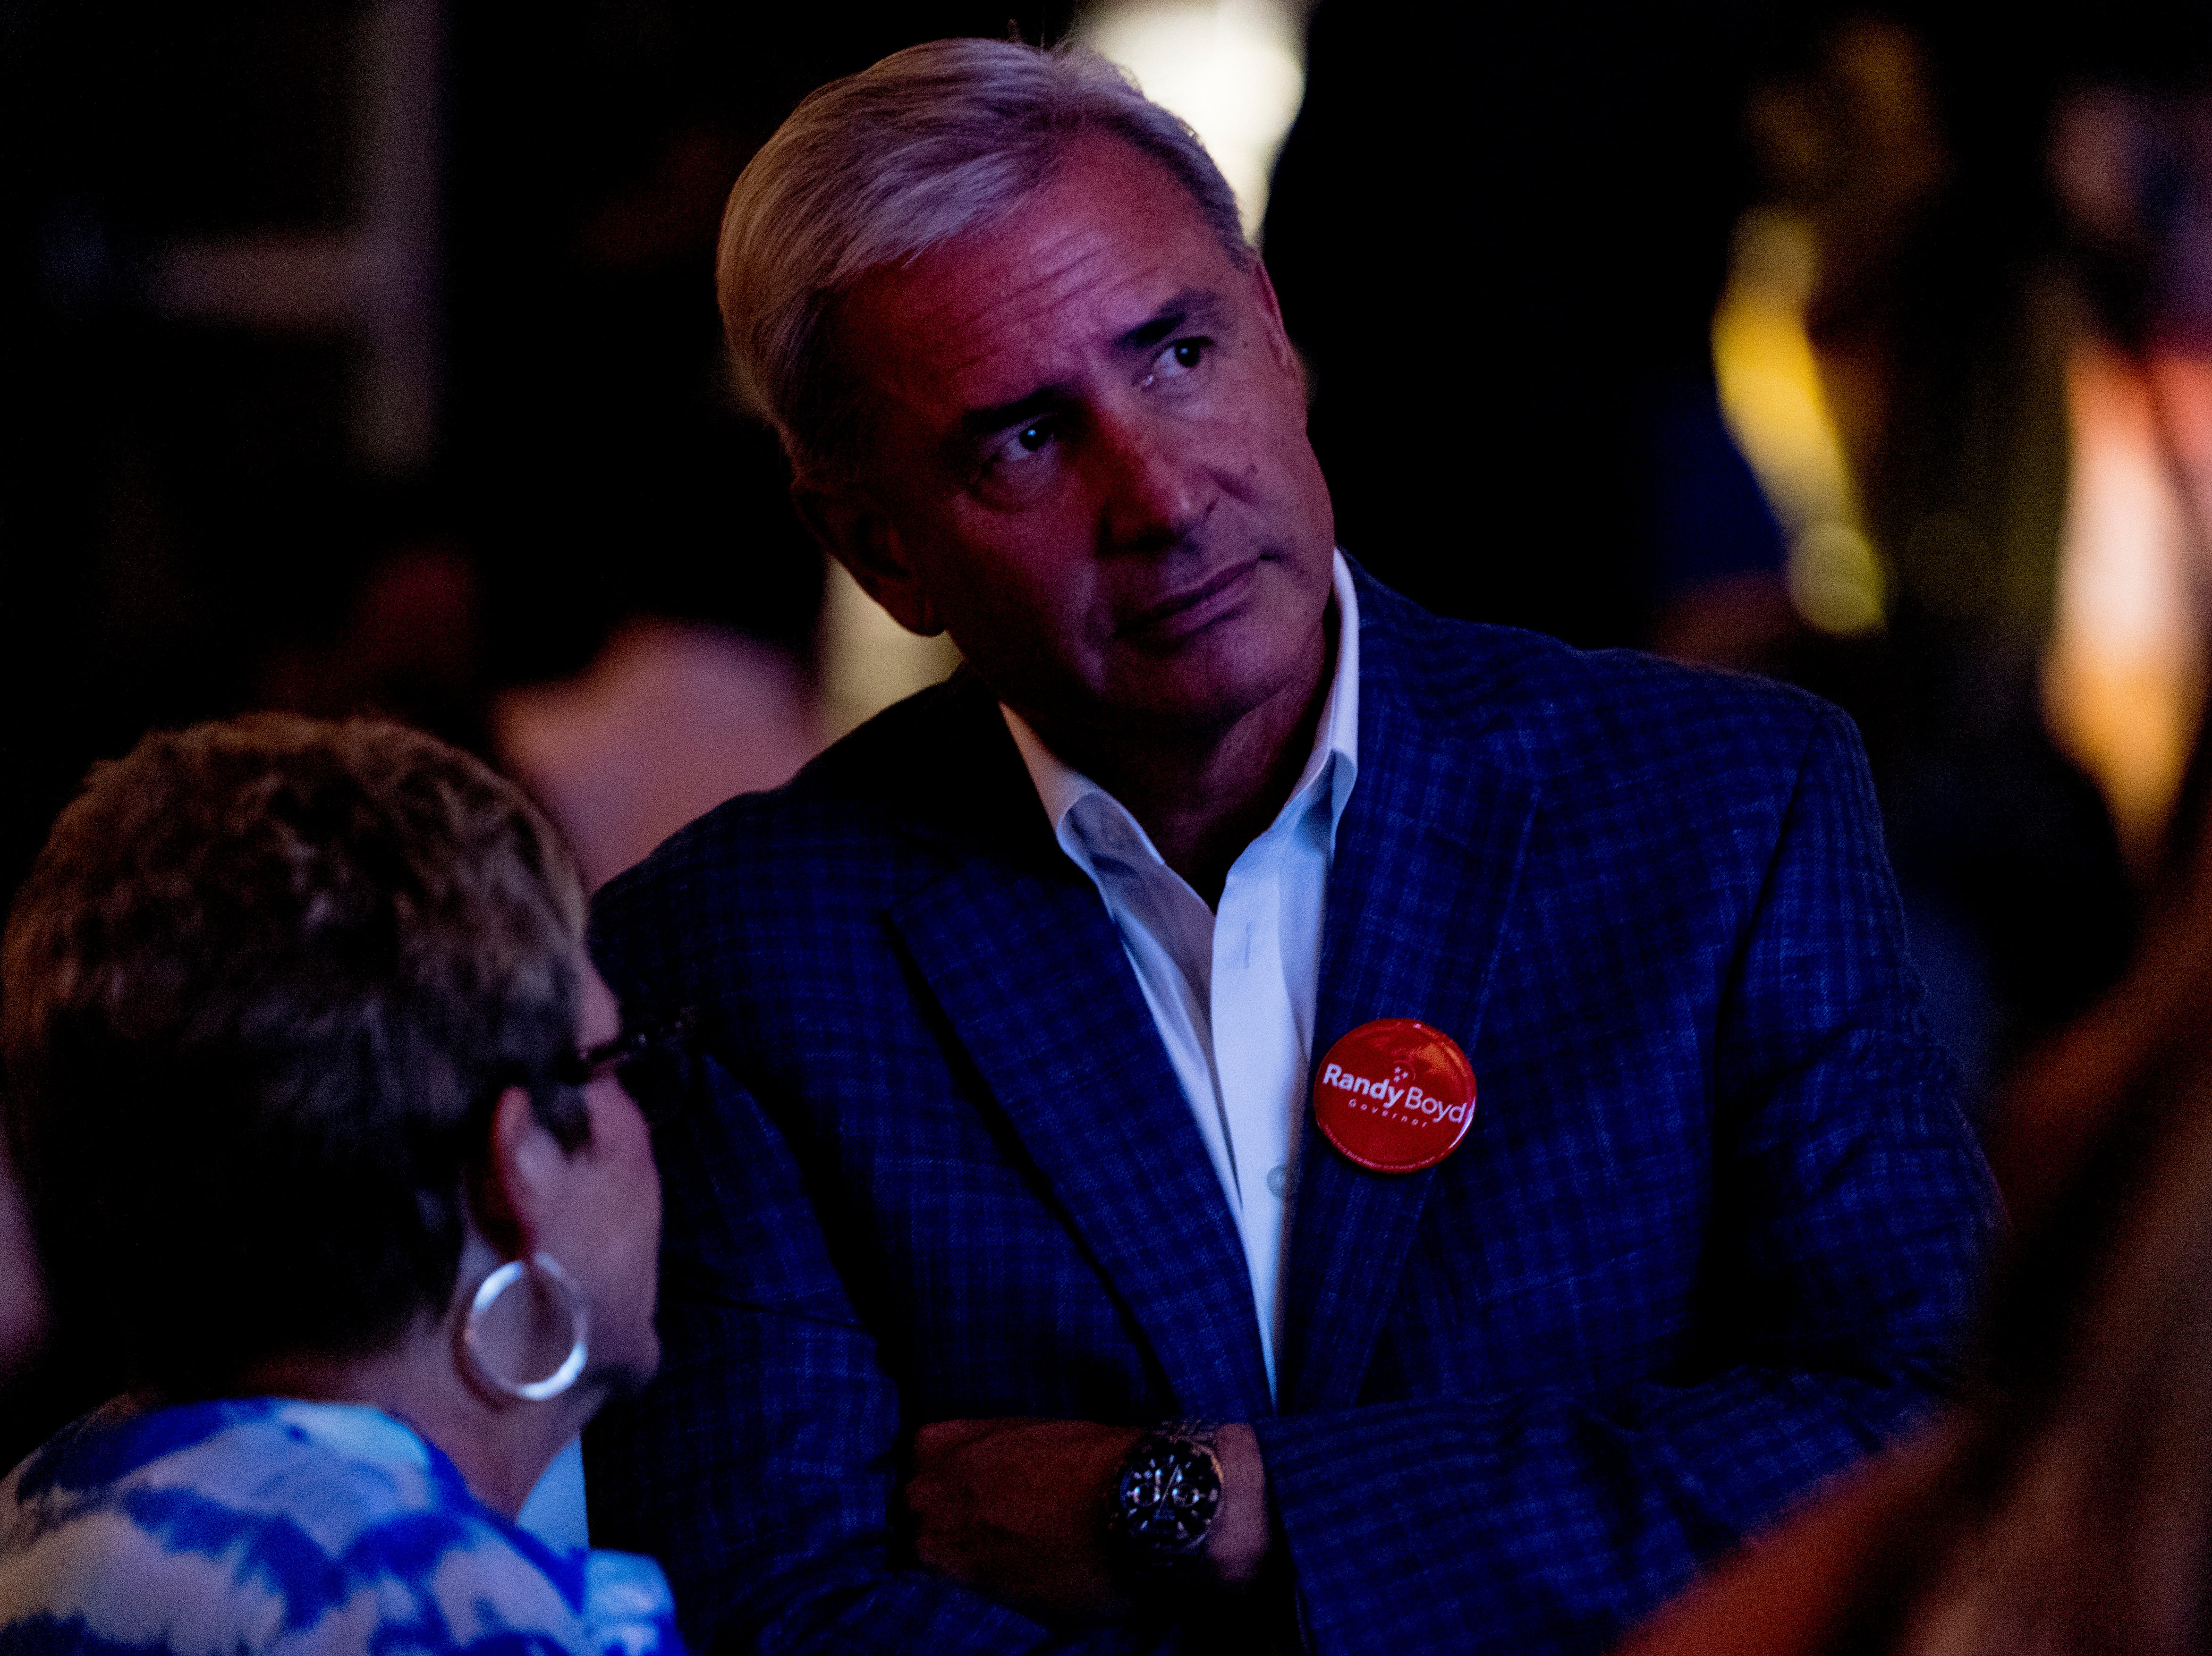 Kingsport Mayor John Clark attends the Randy Boyd for Governor watch party at Jackson Terminal in Knoxville, Tennessee on Thursday, August 2, 2018.